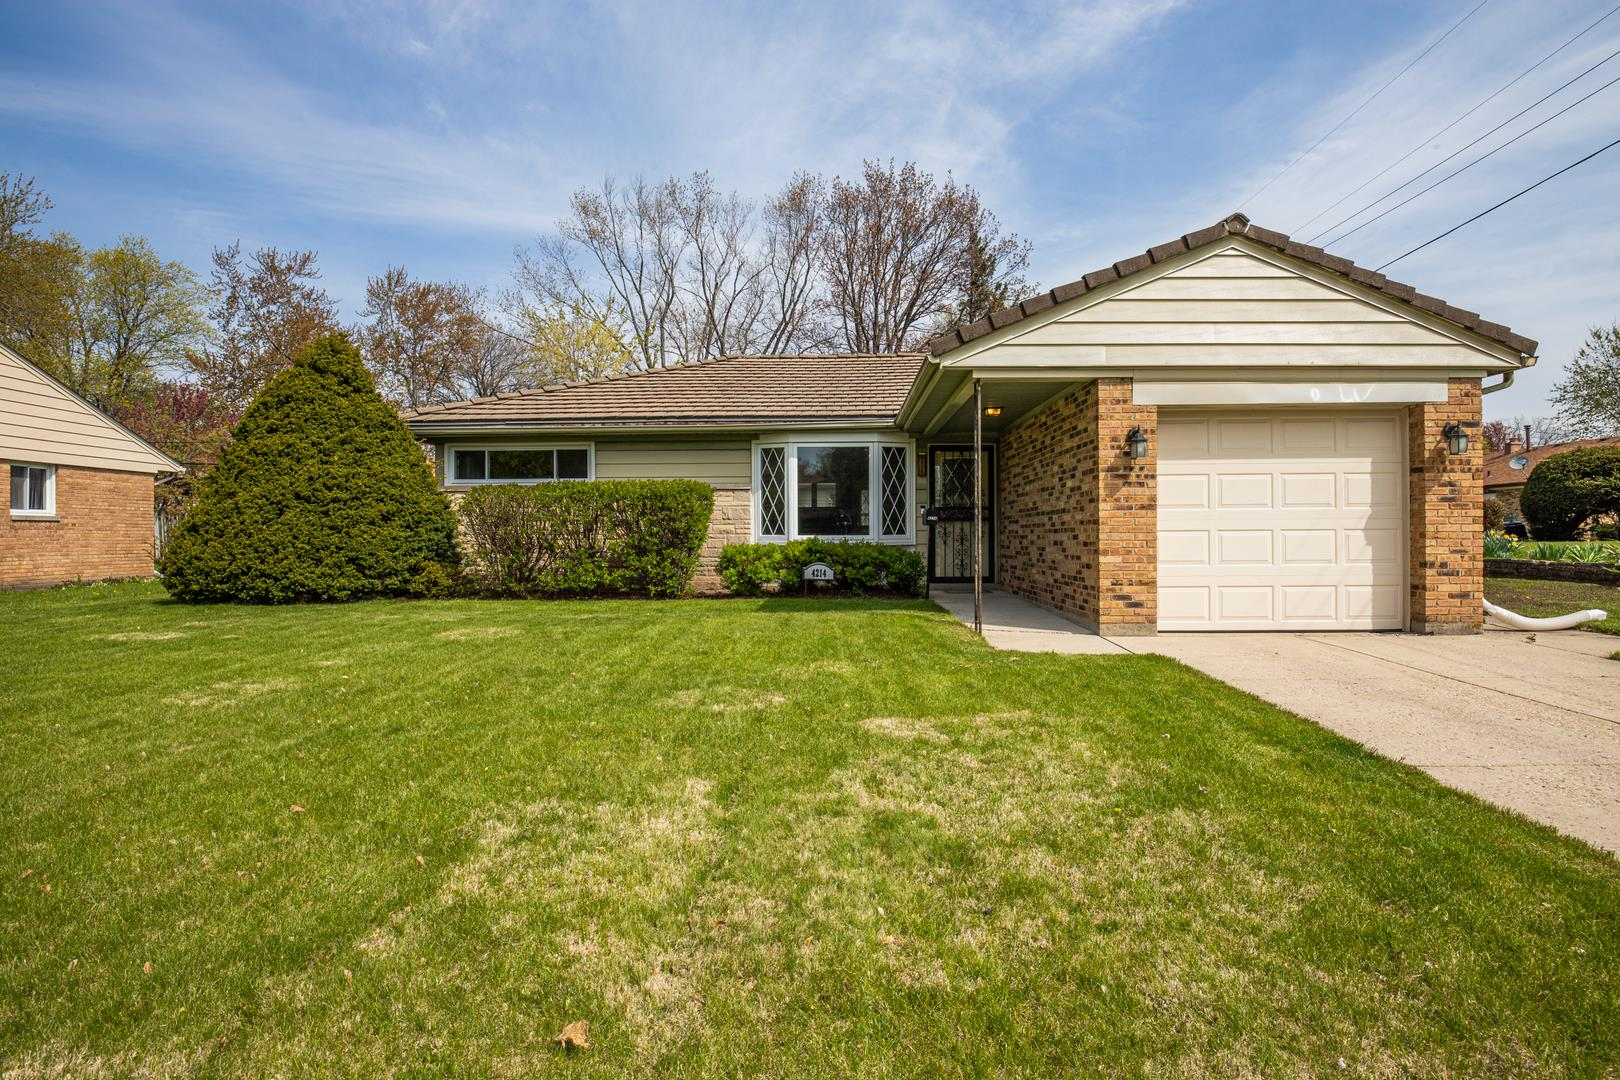 4214 Buckingham Drive, Rockford, IL 61107 - #: 11067099